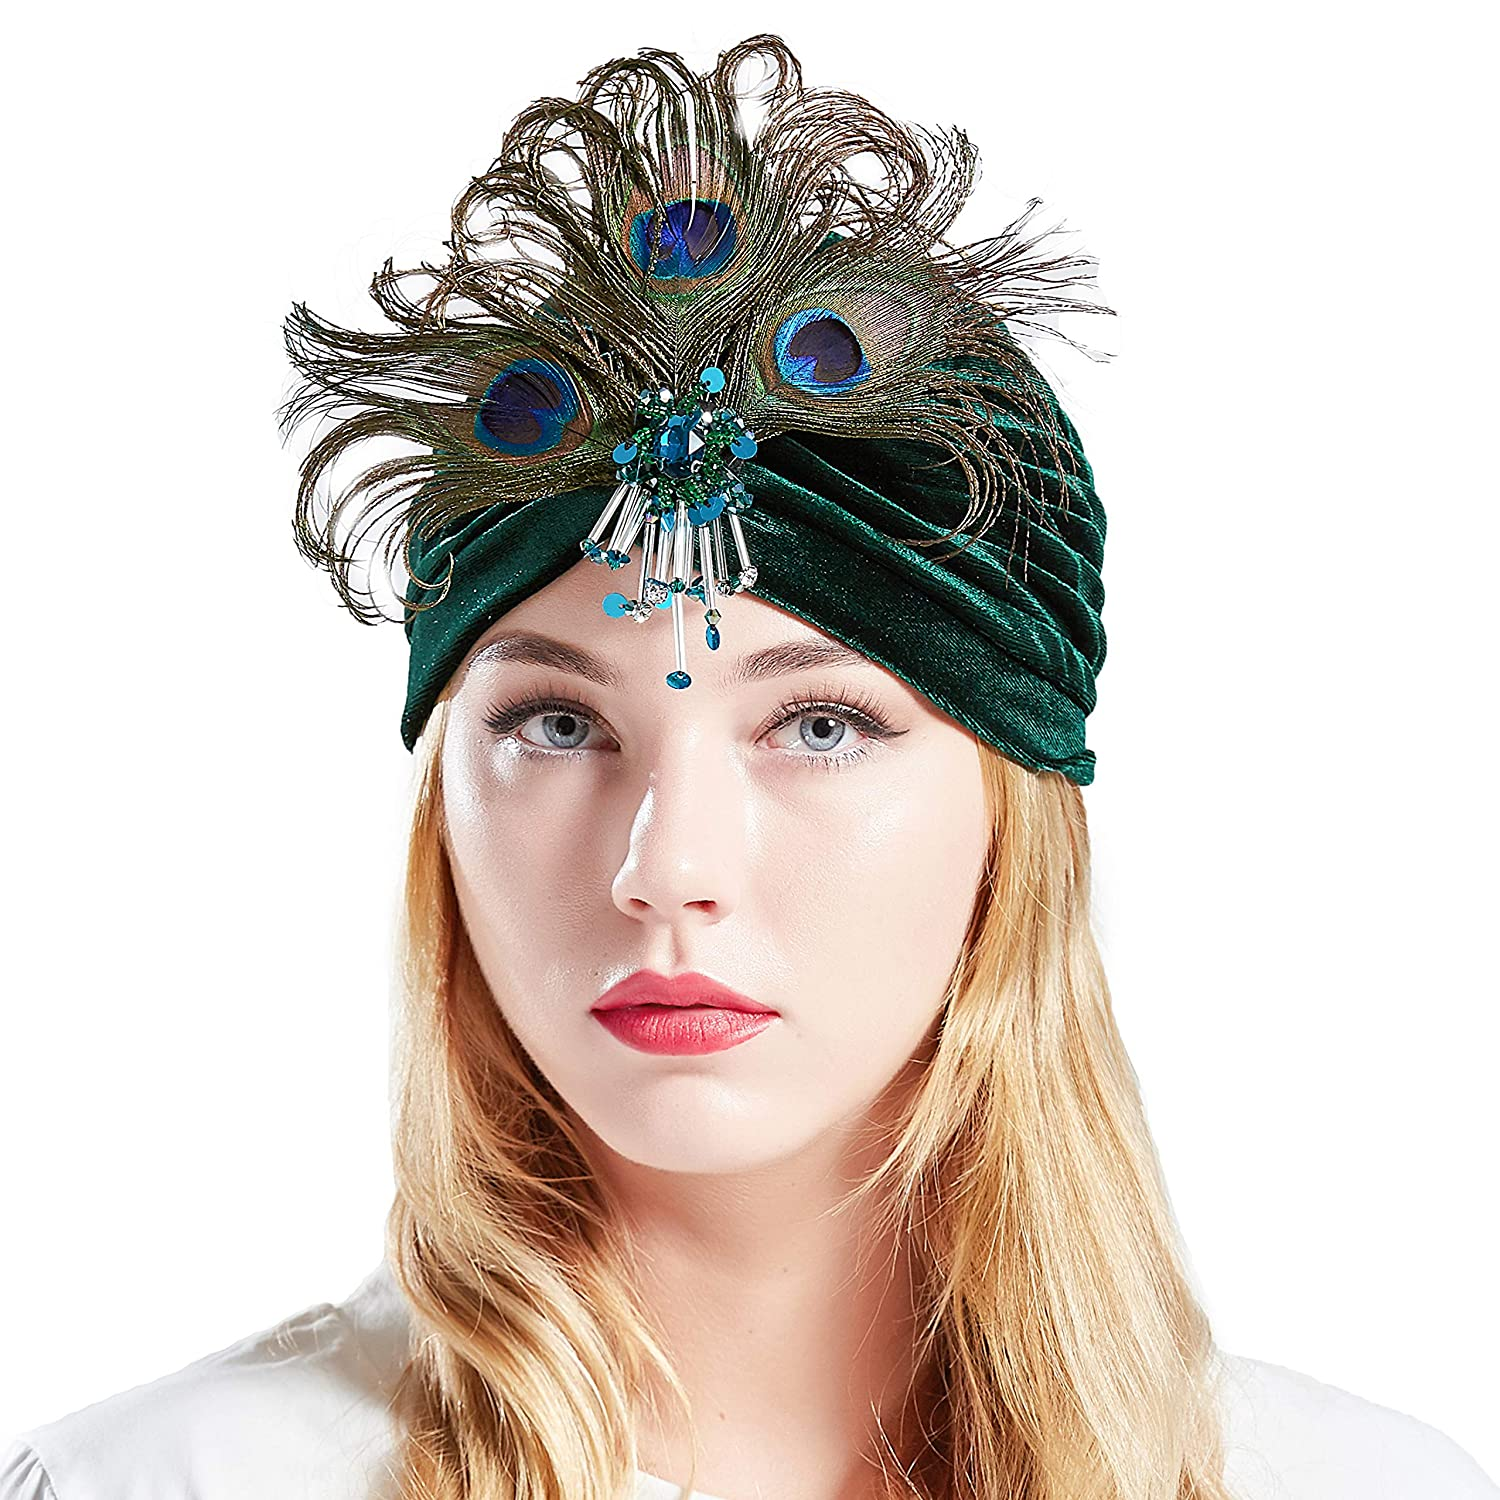 1920s Accessories | Great Gatsby Accessories Guide BABEYOND Gatsby Turban Hat Vintage 1920s Head Wrap Knit Pleated Turban 20s Cap $15.99 AT vintagedancer.com